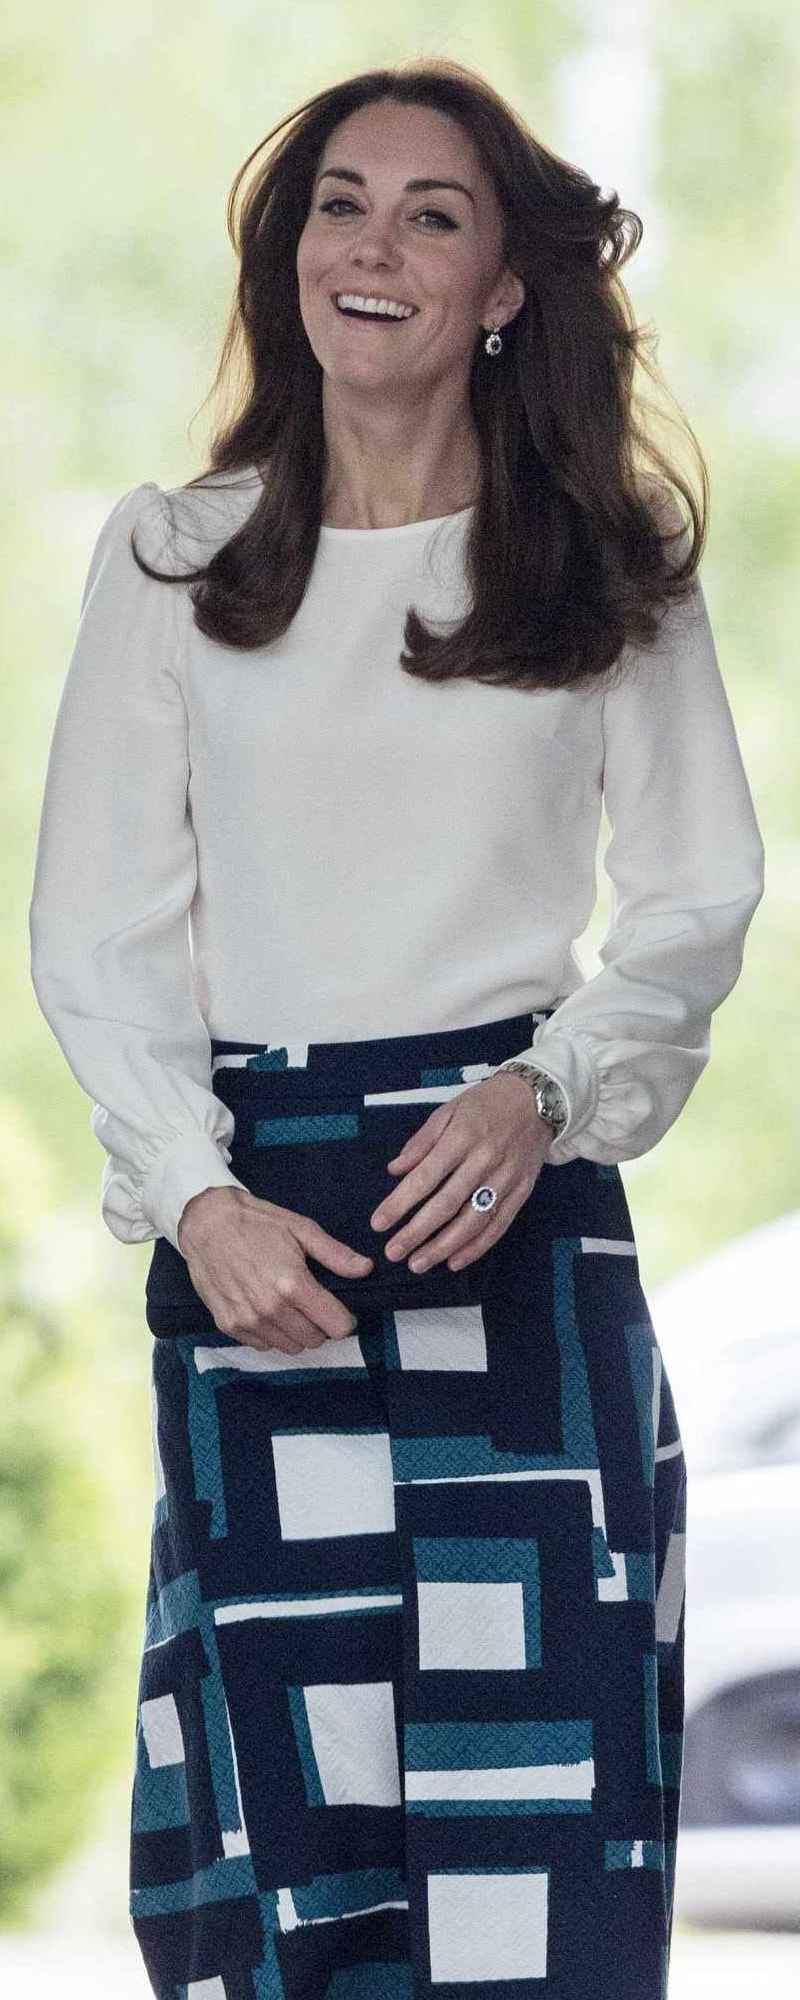 Goat Binky Silk Blouse as seen on Kate Middleton, The Duchess of Cambridge.